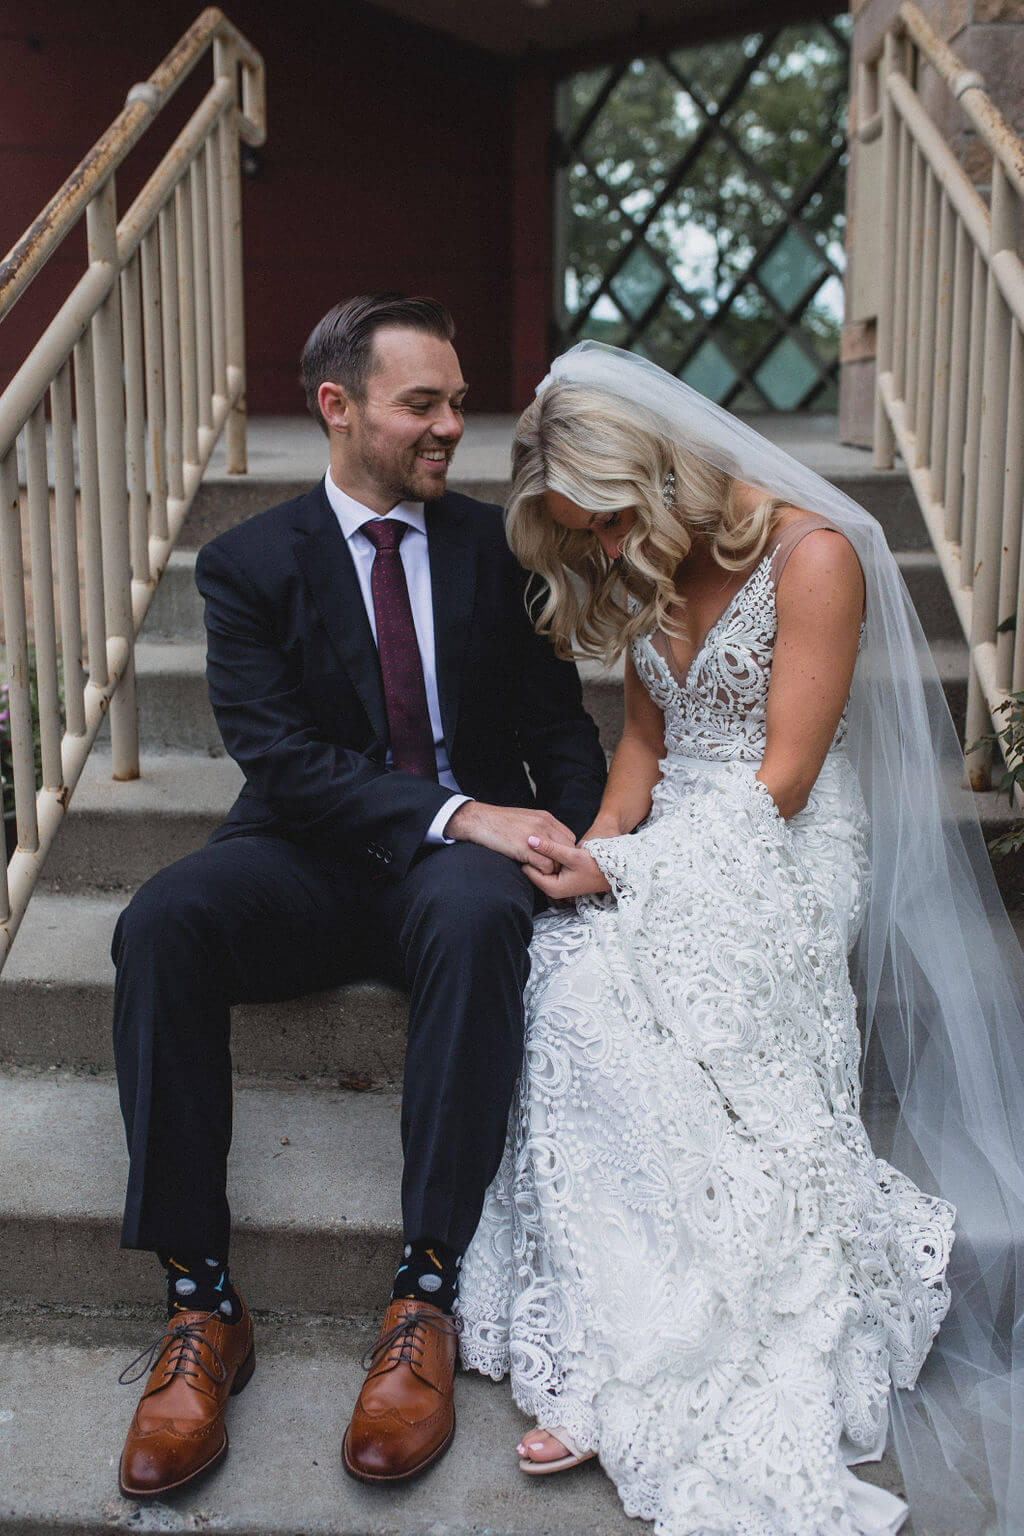 Ashley and Tom | Mariah Brink Photo | Hyland Hills Wedding | Sixpence MN wedding planner | Photo on the stairs | groom in dark navy burgundy and copenhagen shoes